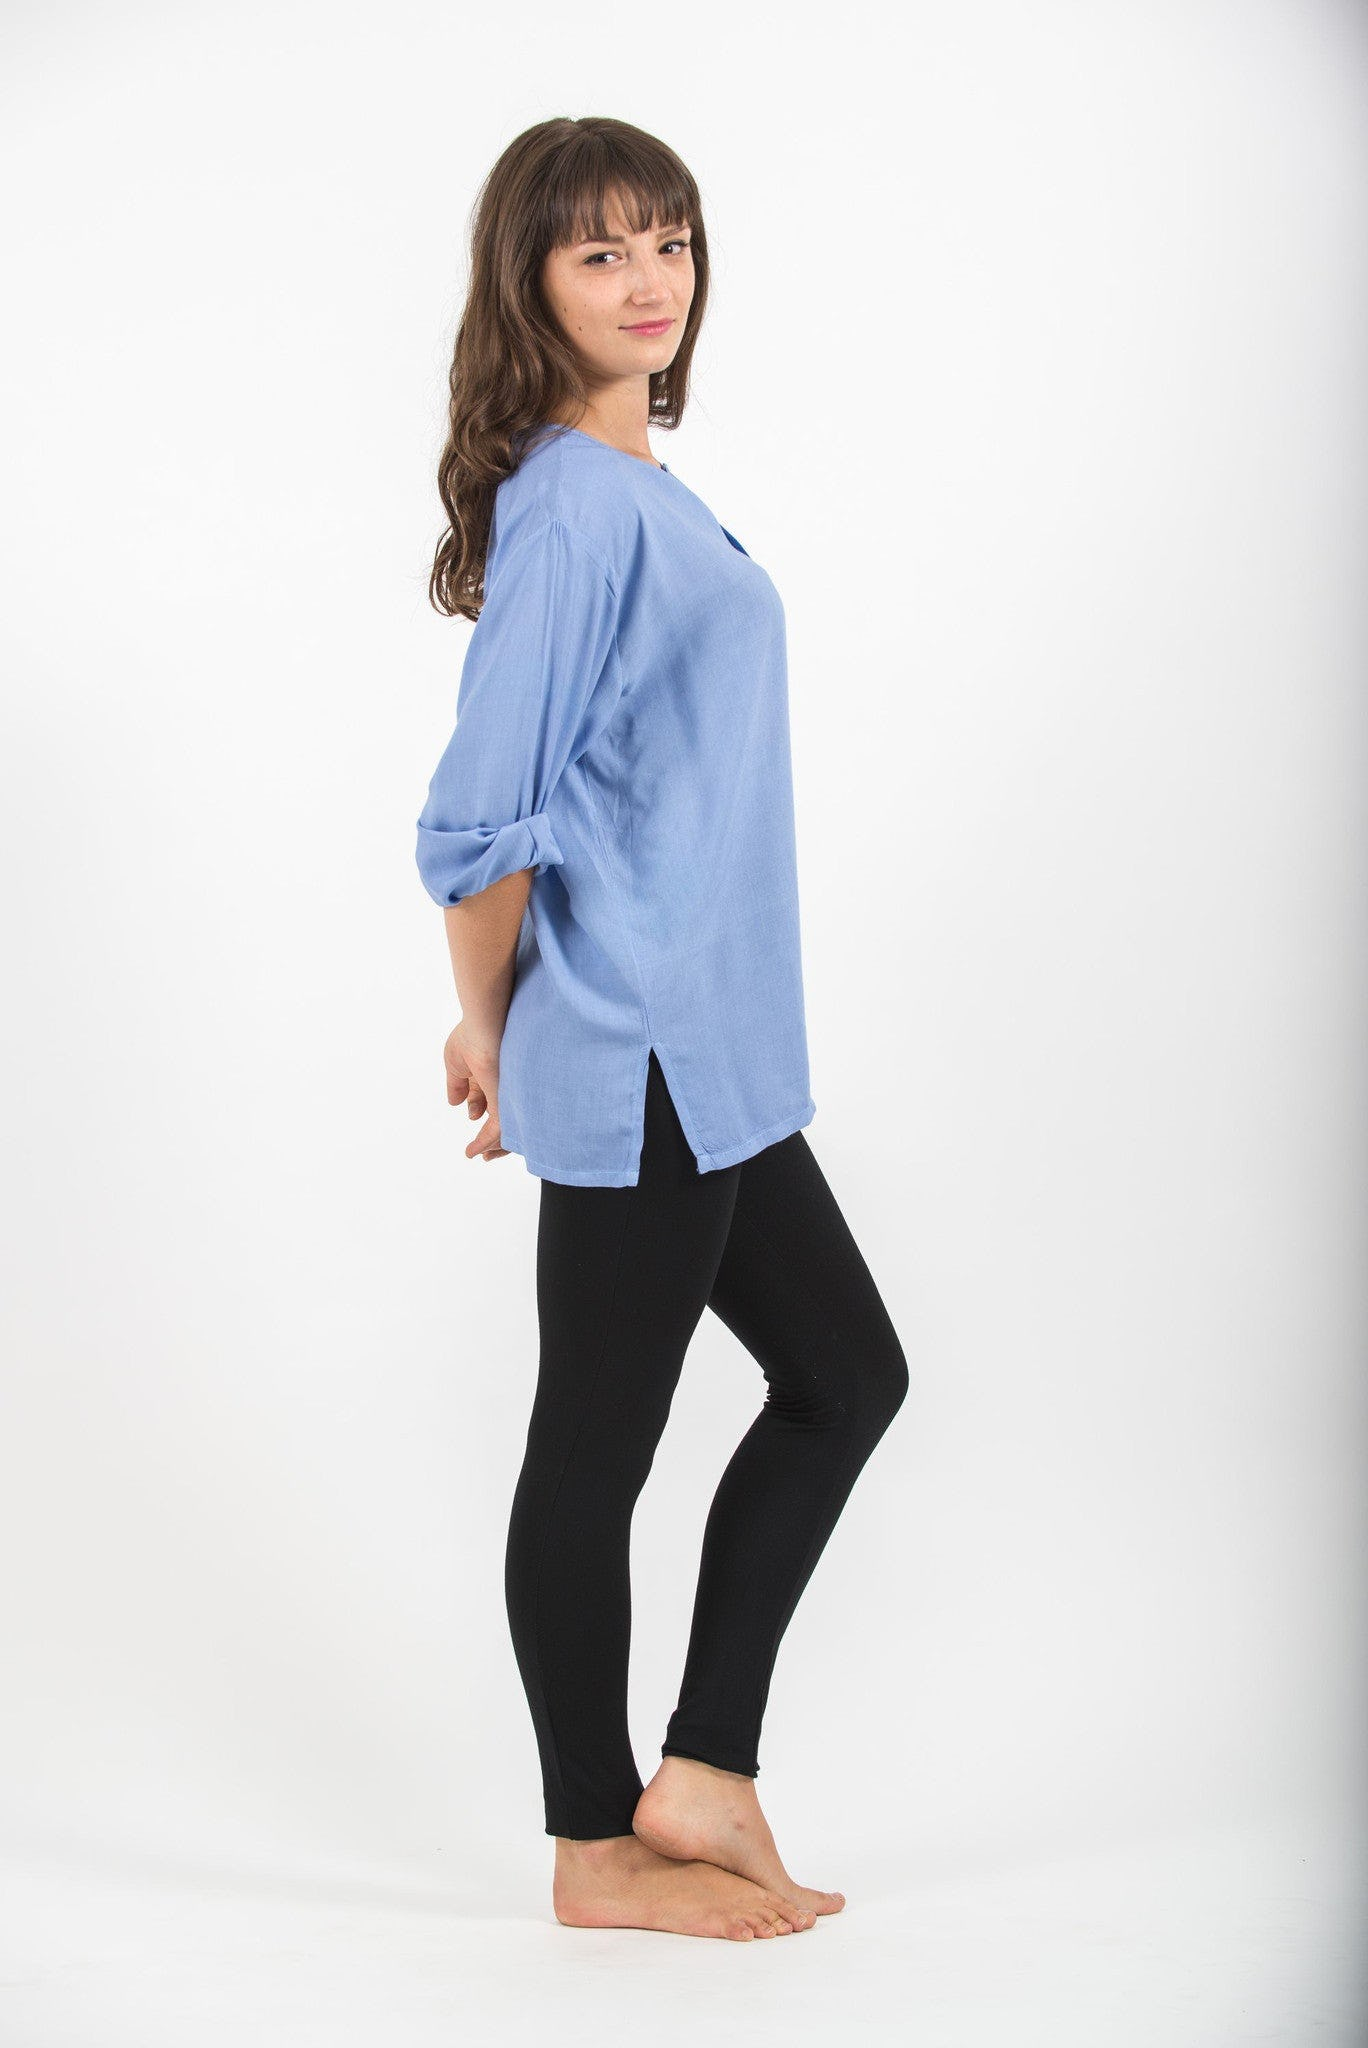 Womens Yoga Shirts No Collar with Coconut Buttons in Blue – Harem ...